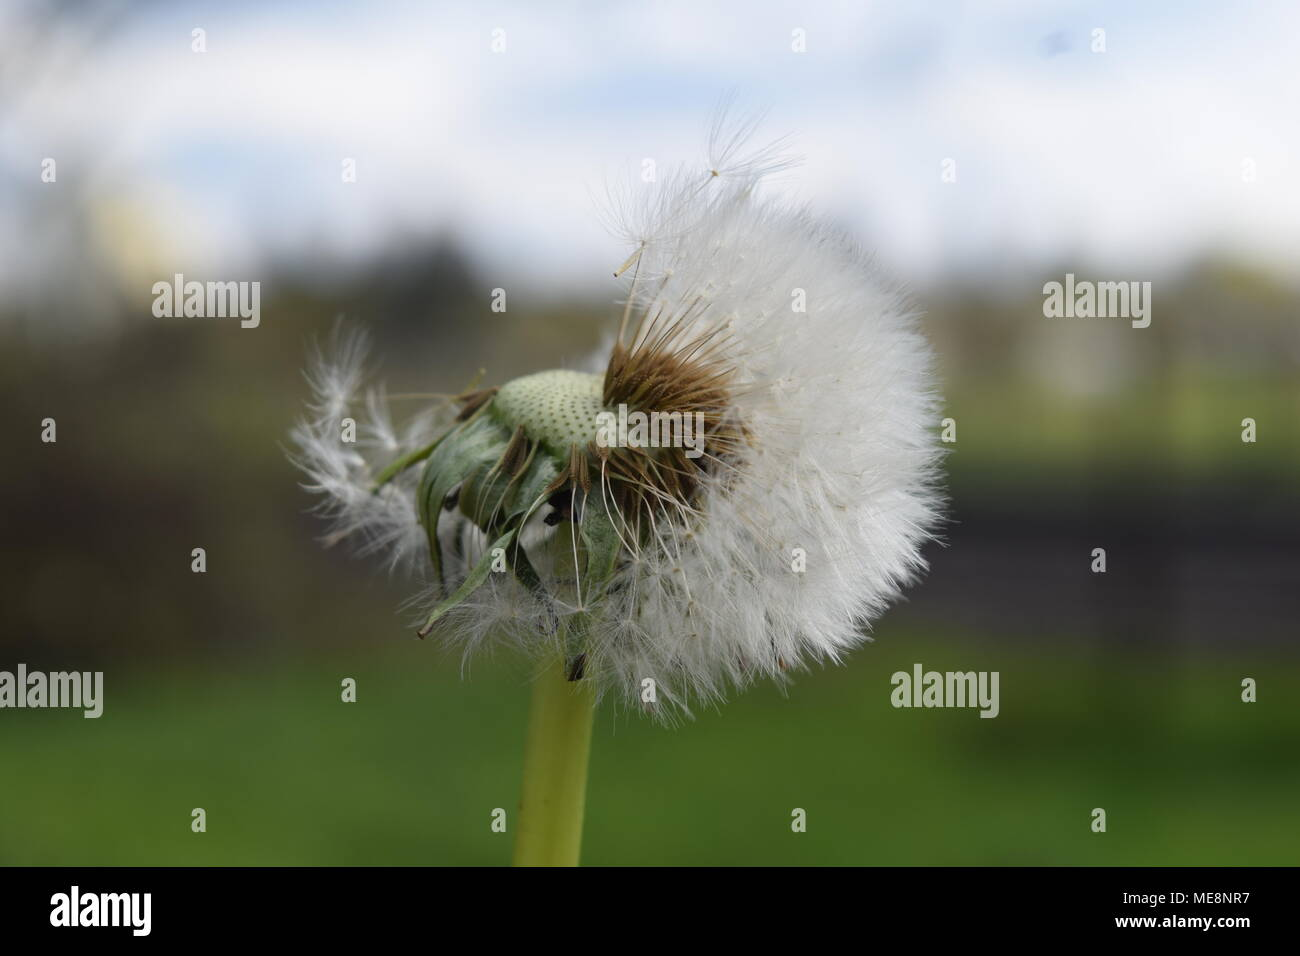 Blowin' in the Wind - Stock Image